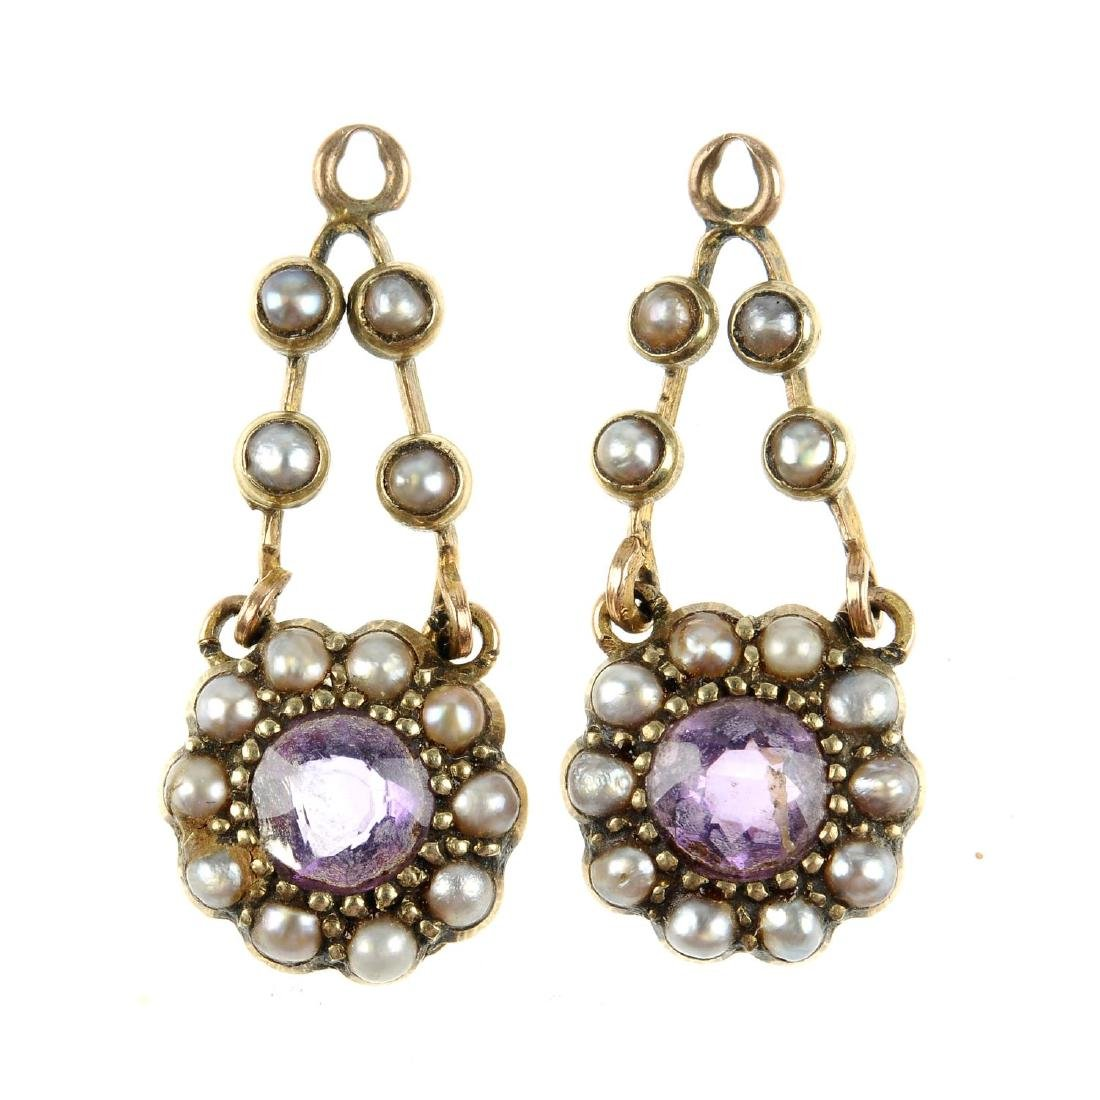 A pair of early 20th century gold amethyst and split